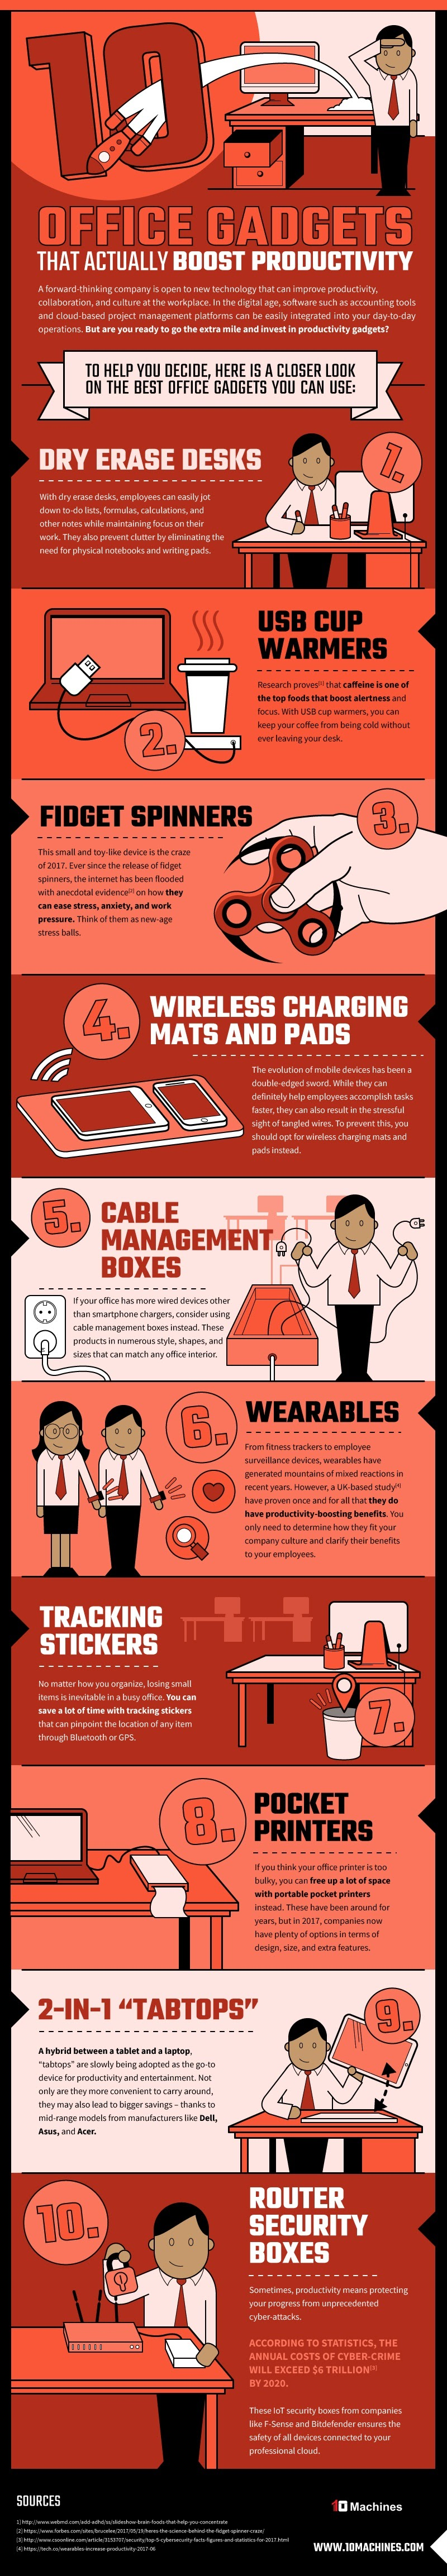 10 Desk Hacks to Improve Your Thinking and AlertnessAt Work[infographic]